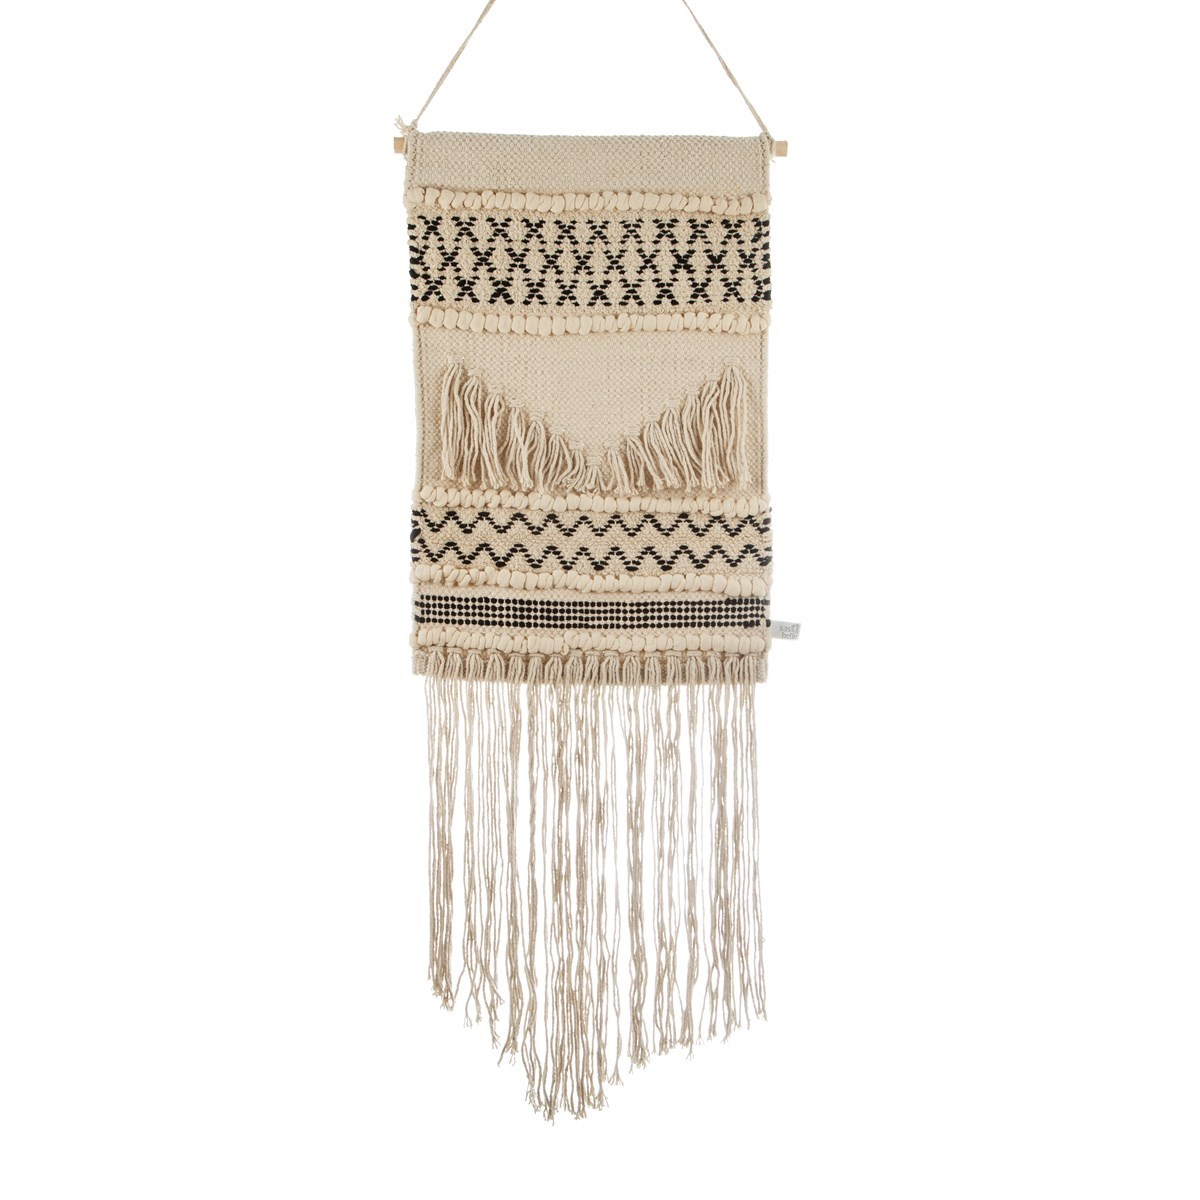 Sasse & Belle Wall Hanging